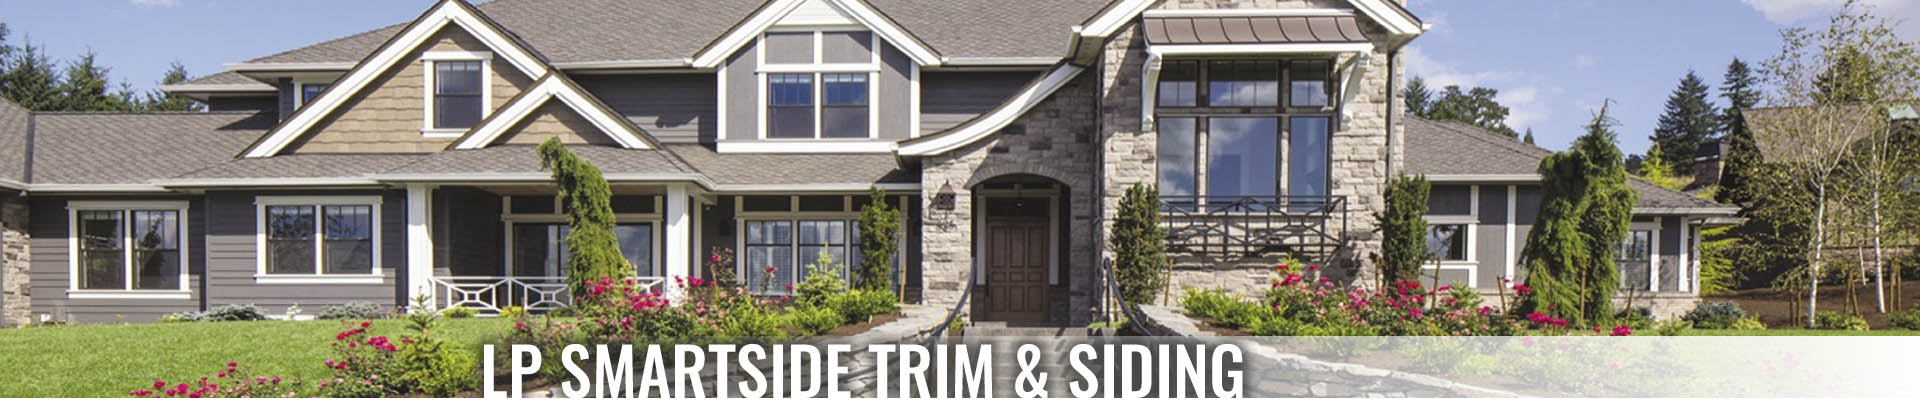 LP SmartSide siding - Turkstra Lumber supplier Designer Showcase - See touch feel!